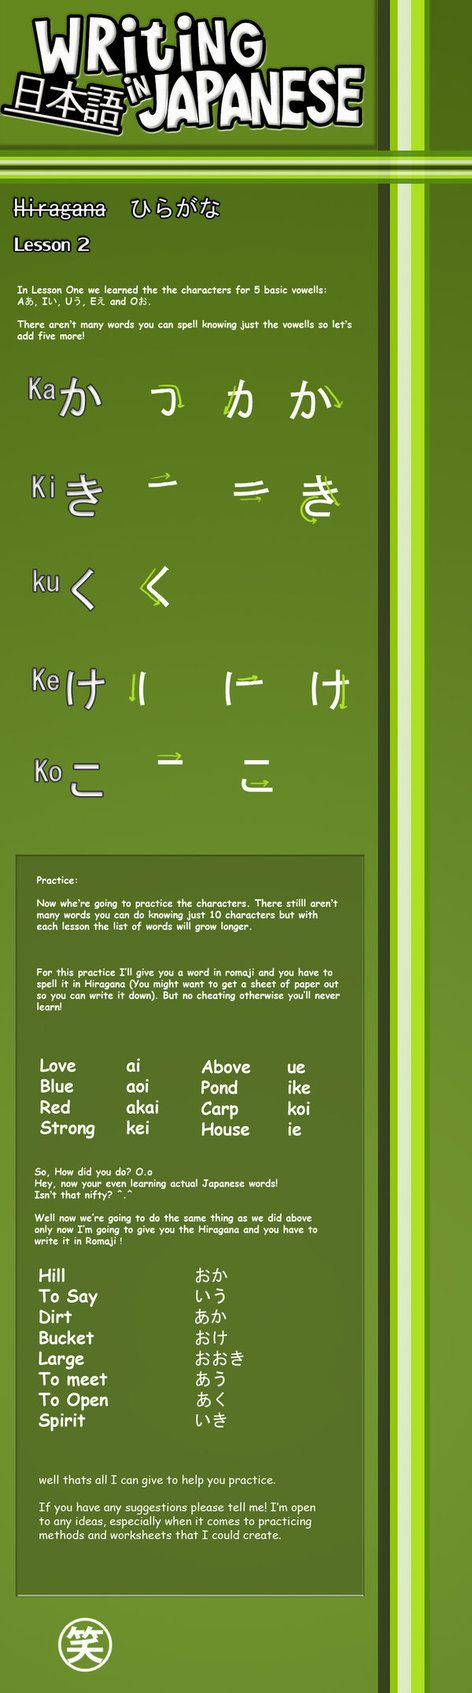 Writing Japanese- Lesson 2 by emm2341 on DeviantArt